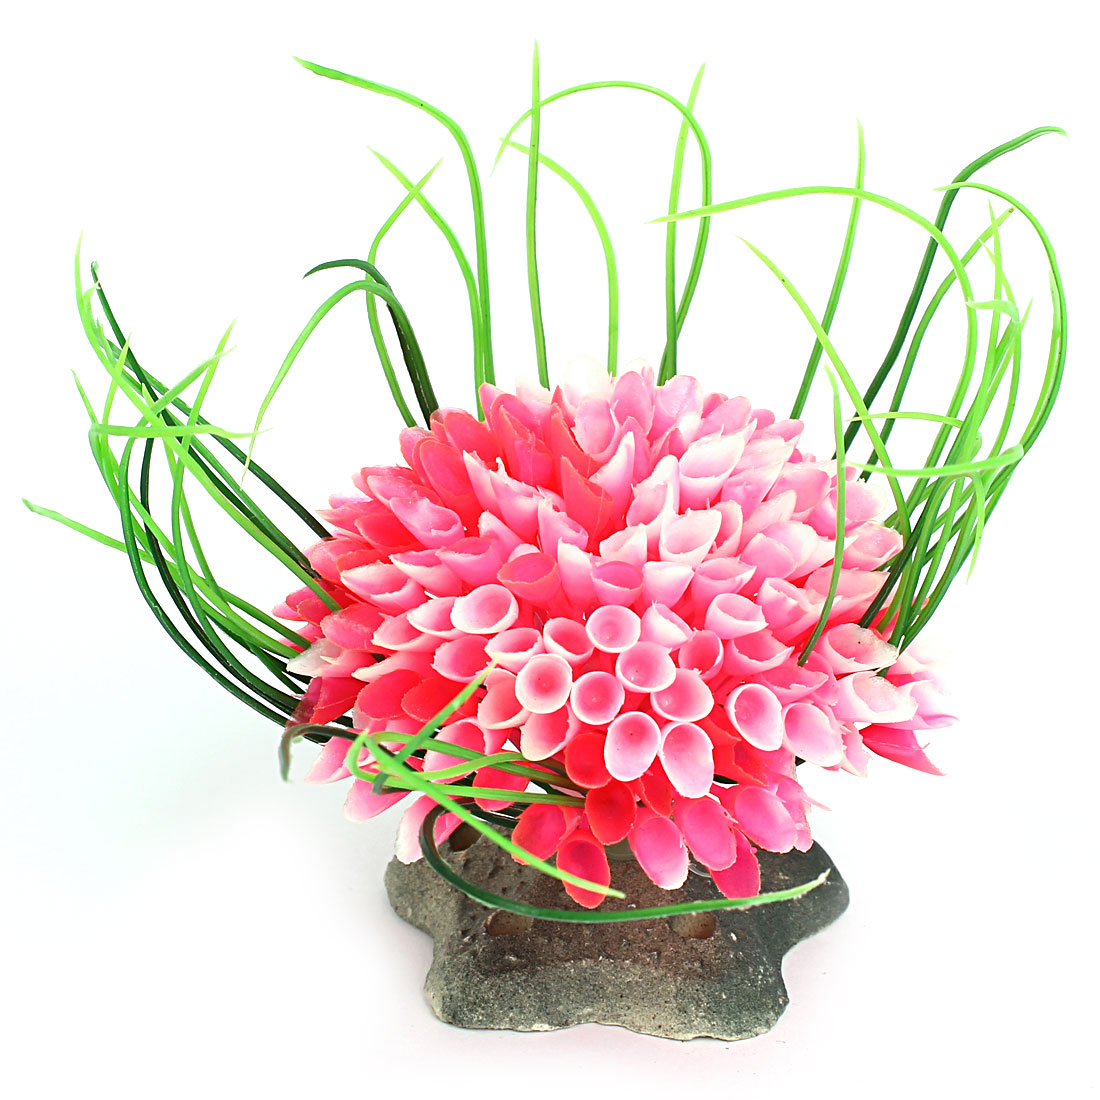 Aquarium Fish Tank Bowl Star Base Plastic Plant Bouquet Decor Ornament Pink